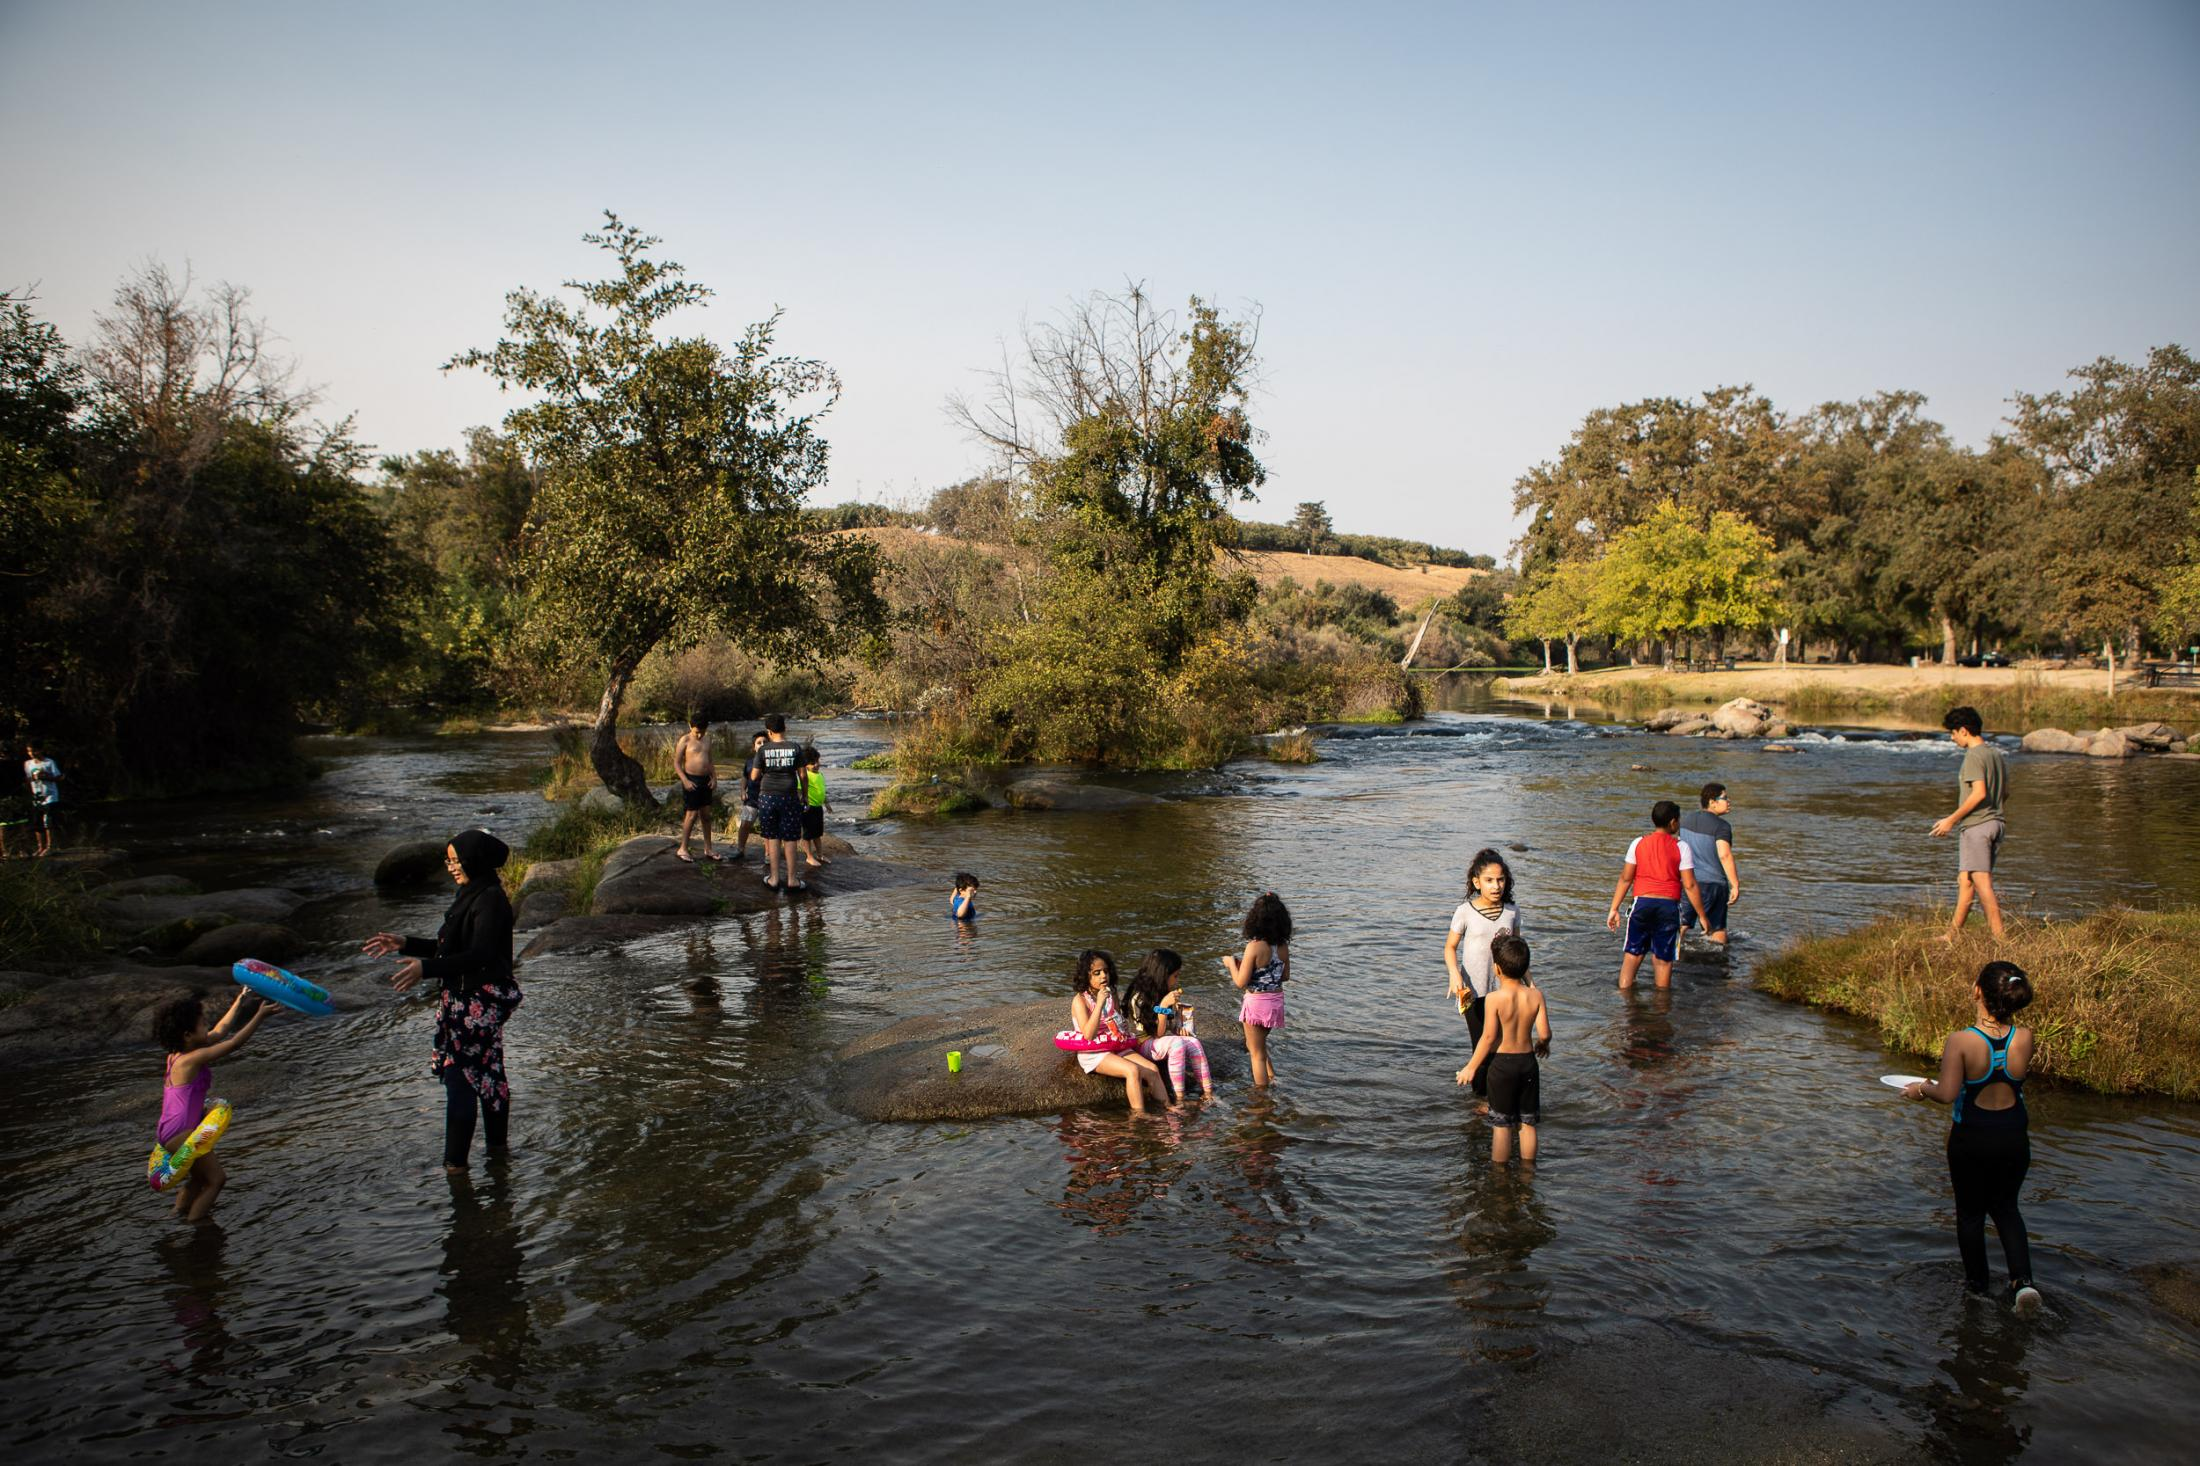 Children swim in the San Joaquin river on a hot October day. The San Joaquin River is California's second-longest waterway, fed by snowmelt from the Sierra Nevada Mountains. From Friant dam it is divvied up and shunted into a vast network of canals to supply water for millions of acres of farmland and the Central Valley's growing cities. For decades, one 60-mile section—beginning 38 miles downstream of Friant Dam and stretching to the San Joaquin's confluence with the Merced River—ran dry. Parts of the river where water still flowed were blighted with pesticides and fertilizer, creating massive algal blooms and dead zones. The intensive engineering of the river exacted a huge toll on its native ecosystems. No species suffered more than the Chinook salmon, whose epic migration from the Pacific Ocean to its spawning grounds in the High Sierra was cut short by numerous choke points, not the least of which was Friant's impenetrable barrier of concrete. In a resent settlement mandated that a mere fraction of the San Joaquin's historic flow be restored. The river's many dams would remain, but alternative passages would be built and new spawning areas added in the lower river. In other words, the settlement sought to give the salmon a chance to survive within a massive water management scheme that favors industrial-scale farming. Photographed on assignment for Sierra Magazine